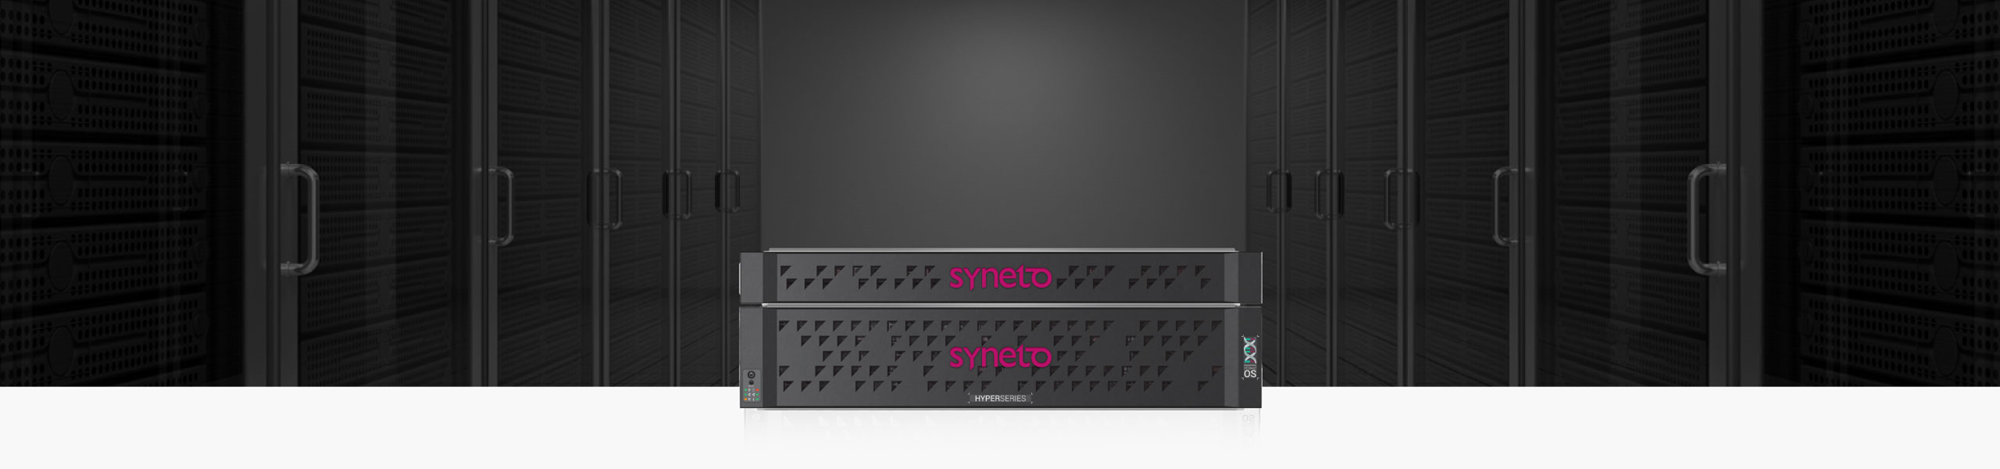 The HYPER 3000 series is a hyperconverged infrastructure product